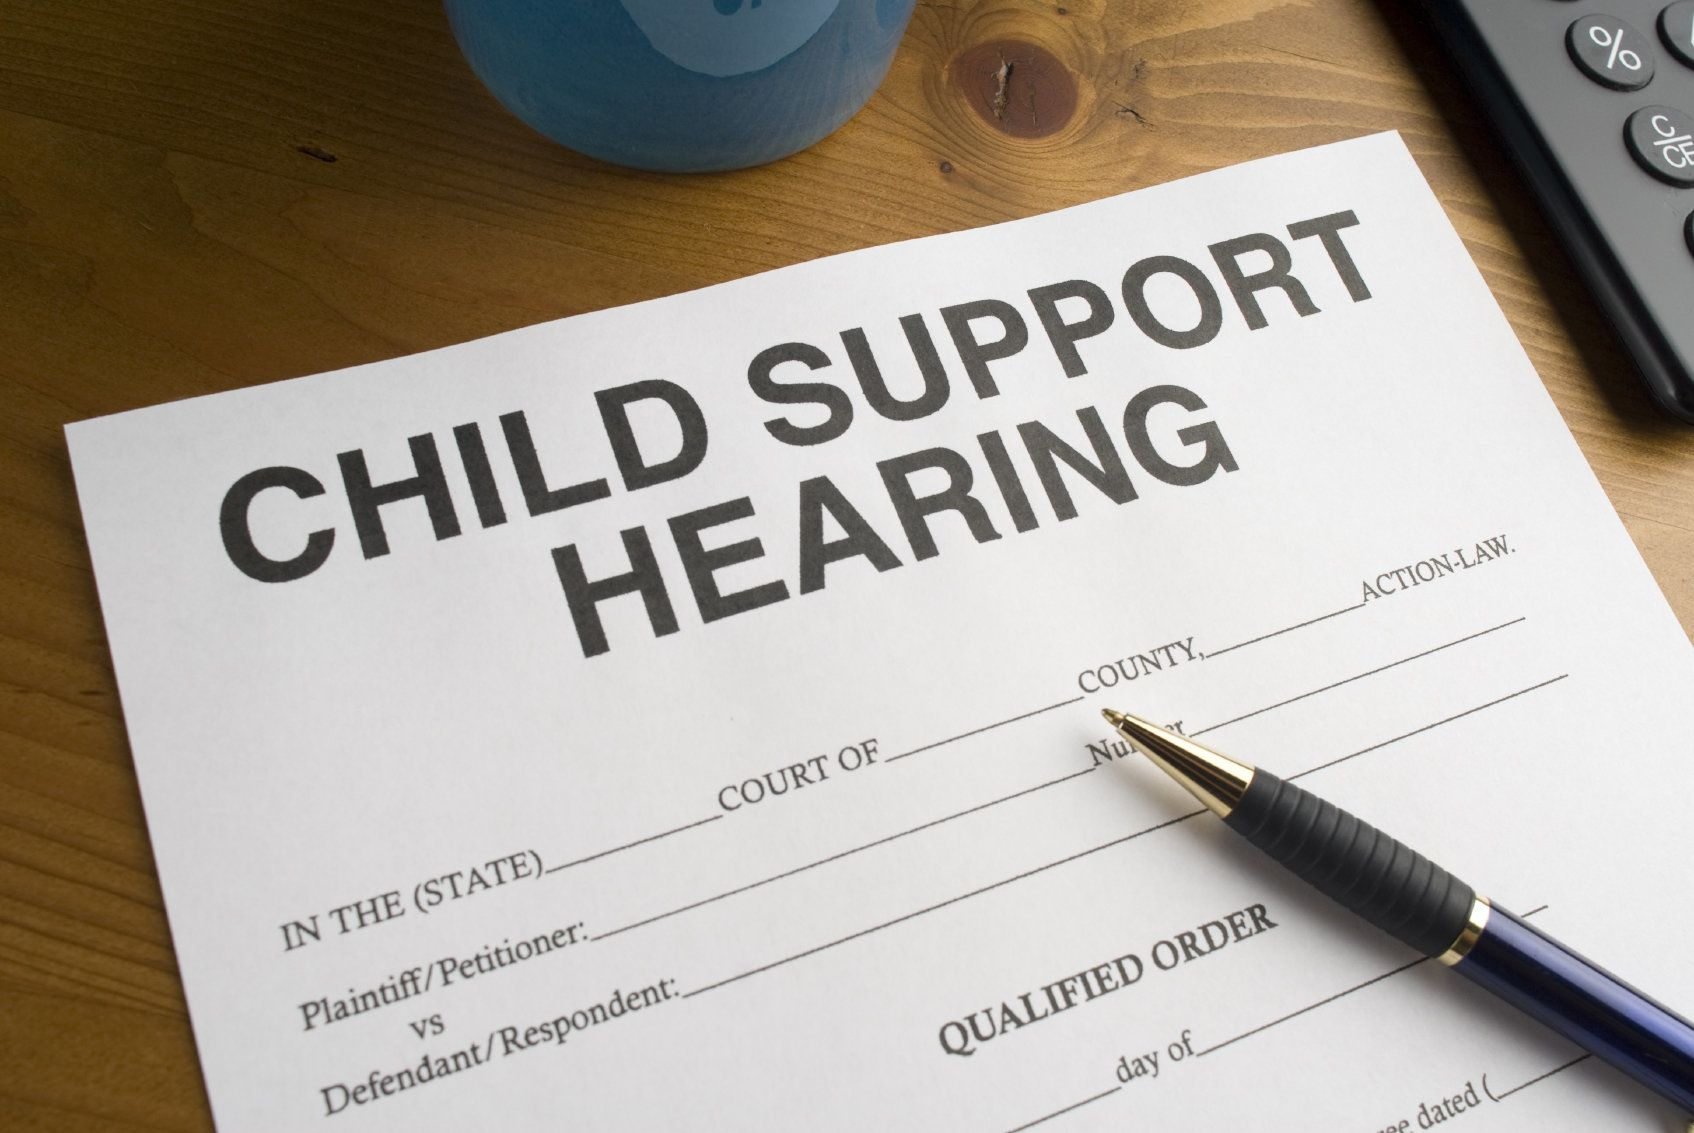 Child support hearing form